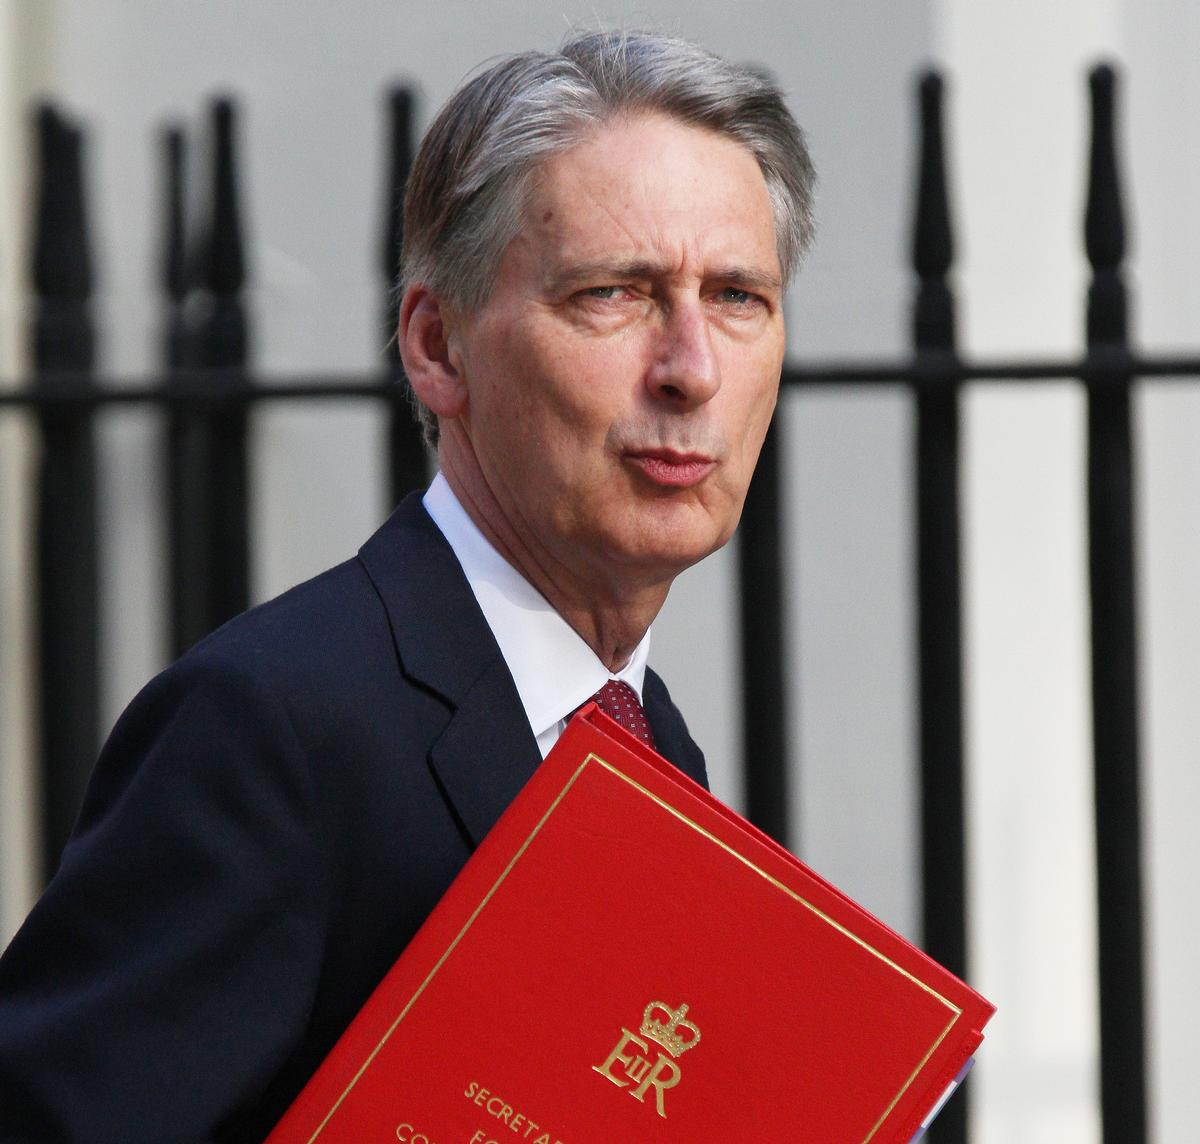 Chancellor Philip Hammond's budget – possibly his last – had a distinct lack of directives mentioning physical activity, sport, wellbeing or hospitality / Shutterstock